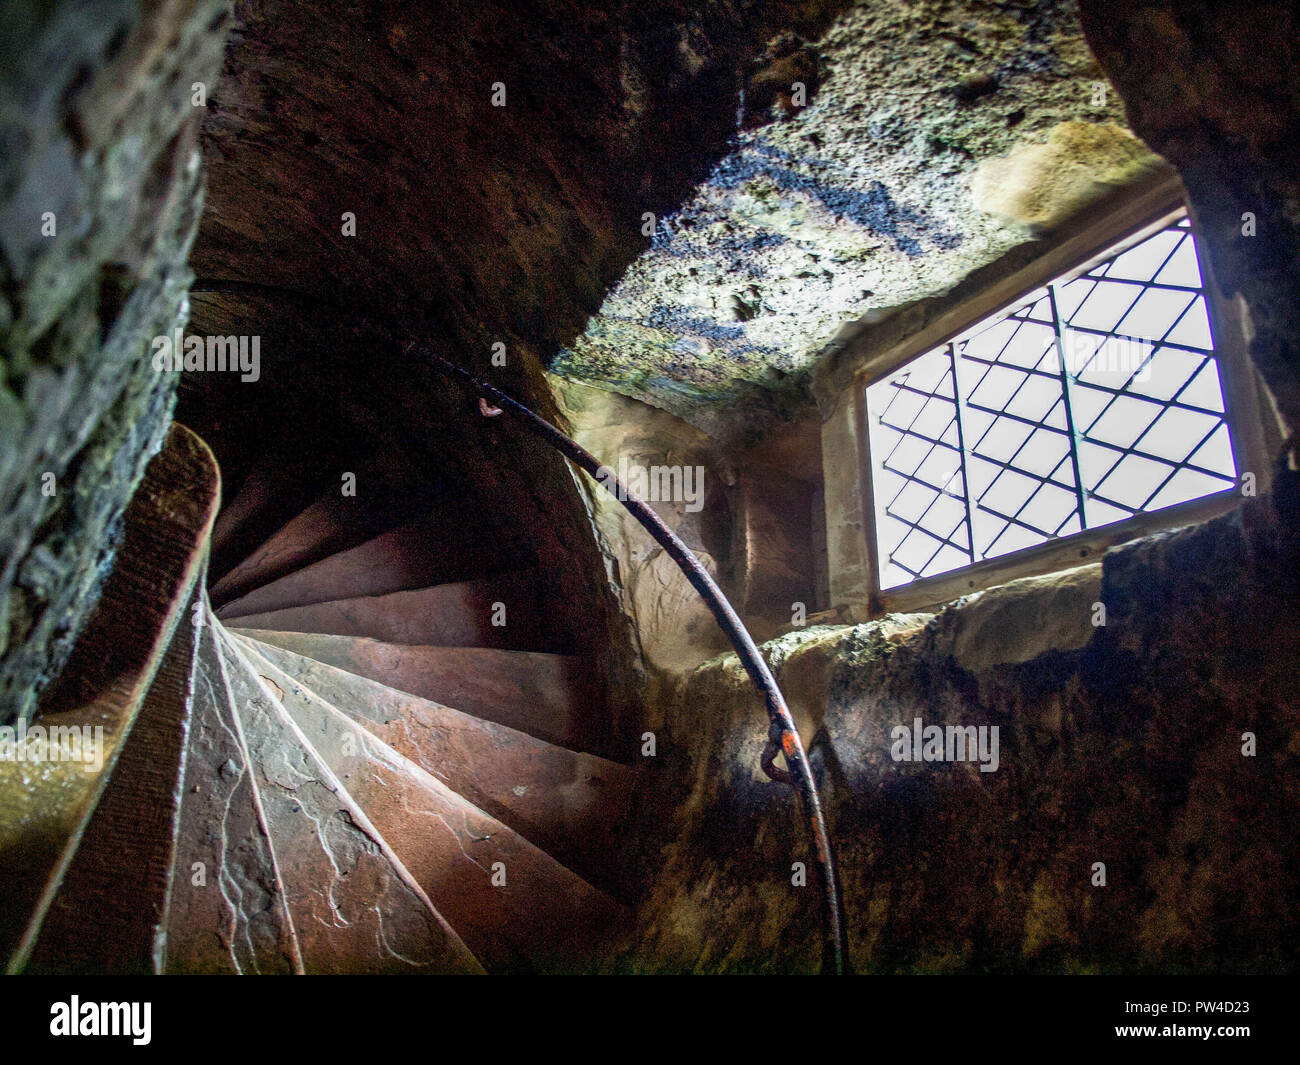 Stone Stairs Spiral down the Old Castle Tower Stock Photo